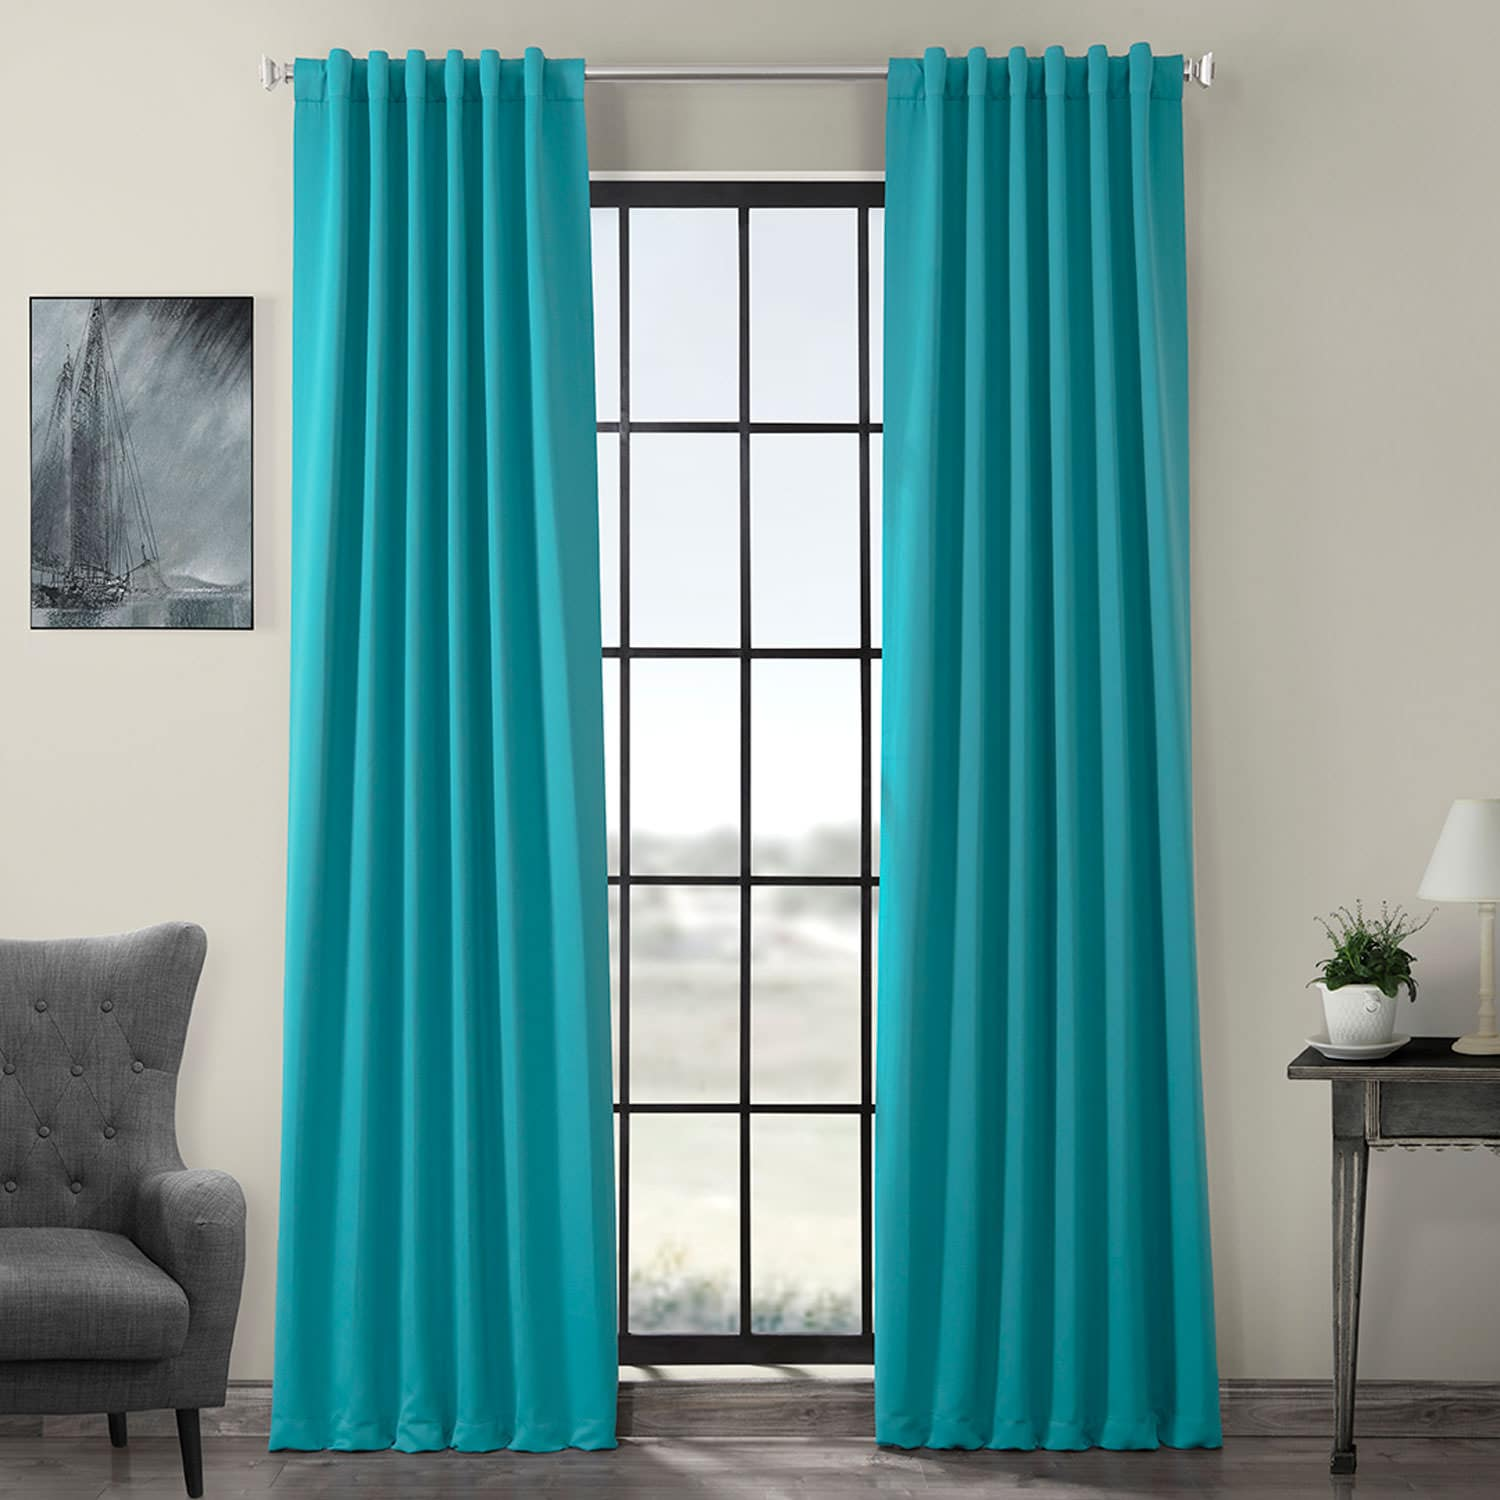 Curtains For A Blue Room Turquoise Blue Pole Pocket Room Darkening Curtain